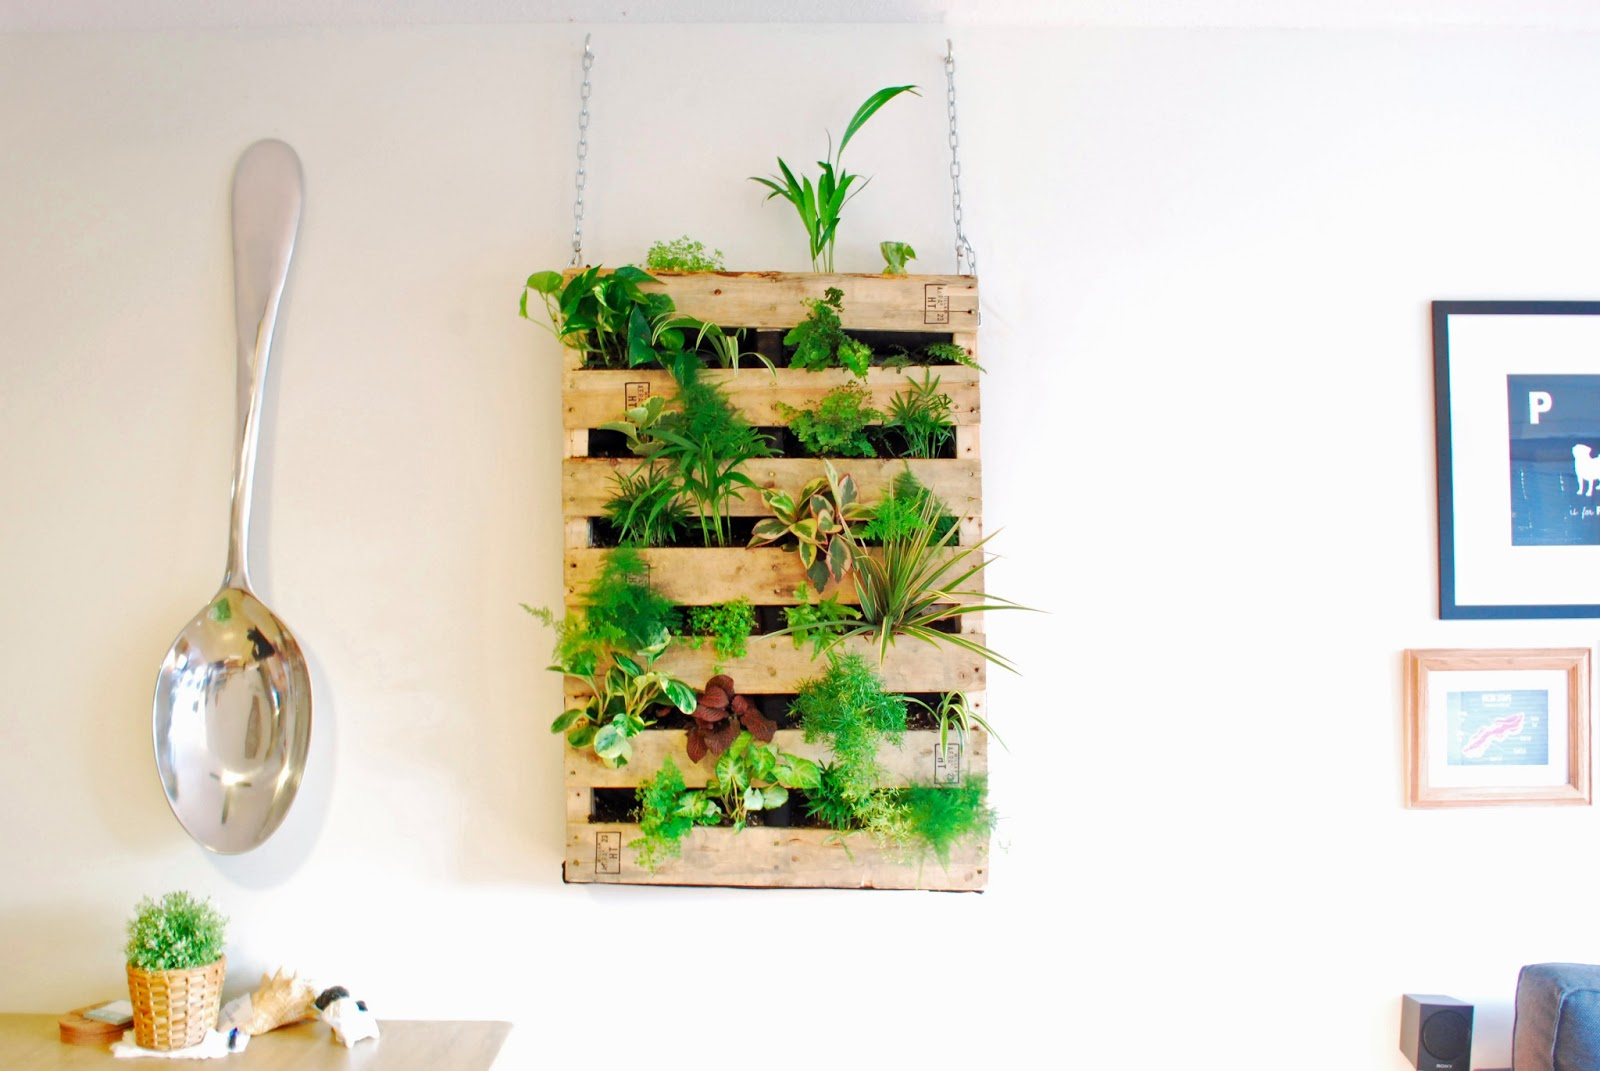 The brew diy pallet living wall Indoor living wall herb garden